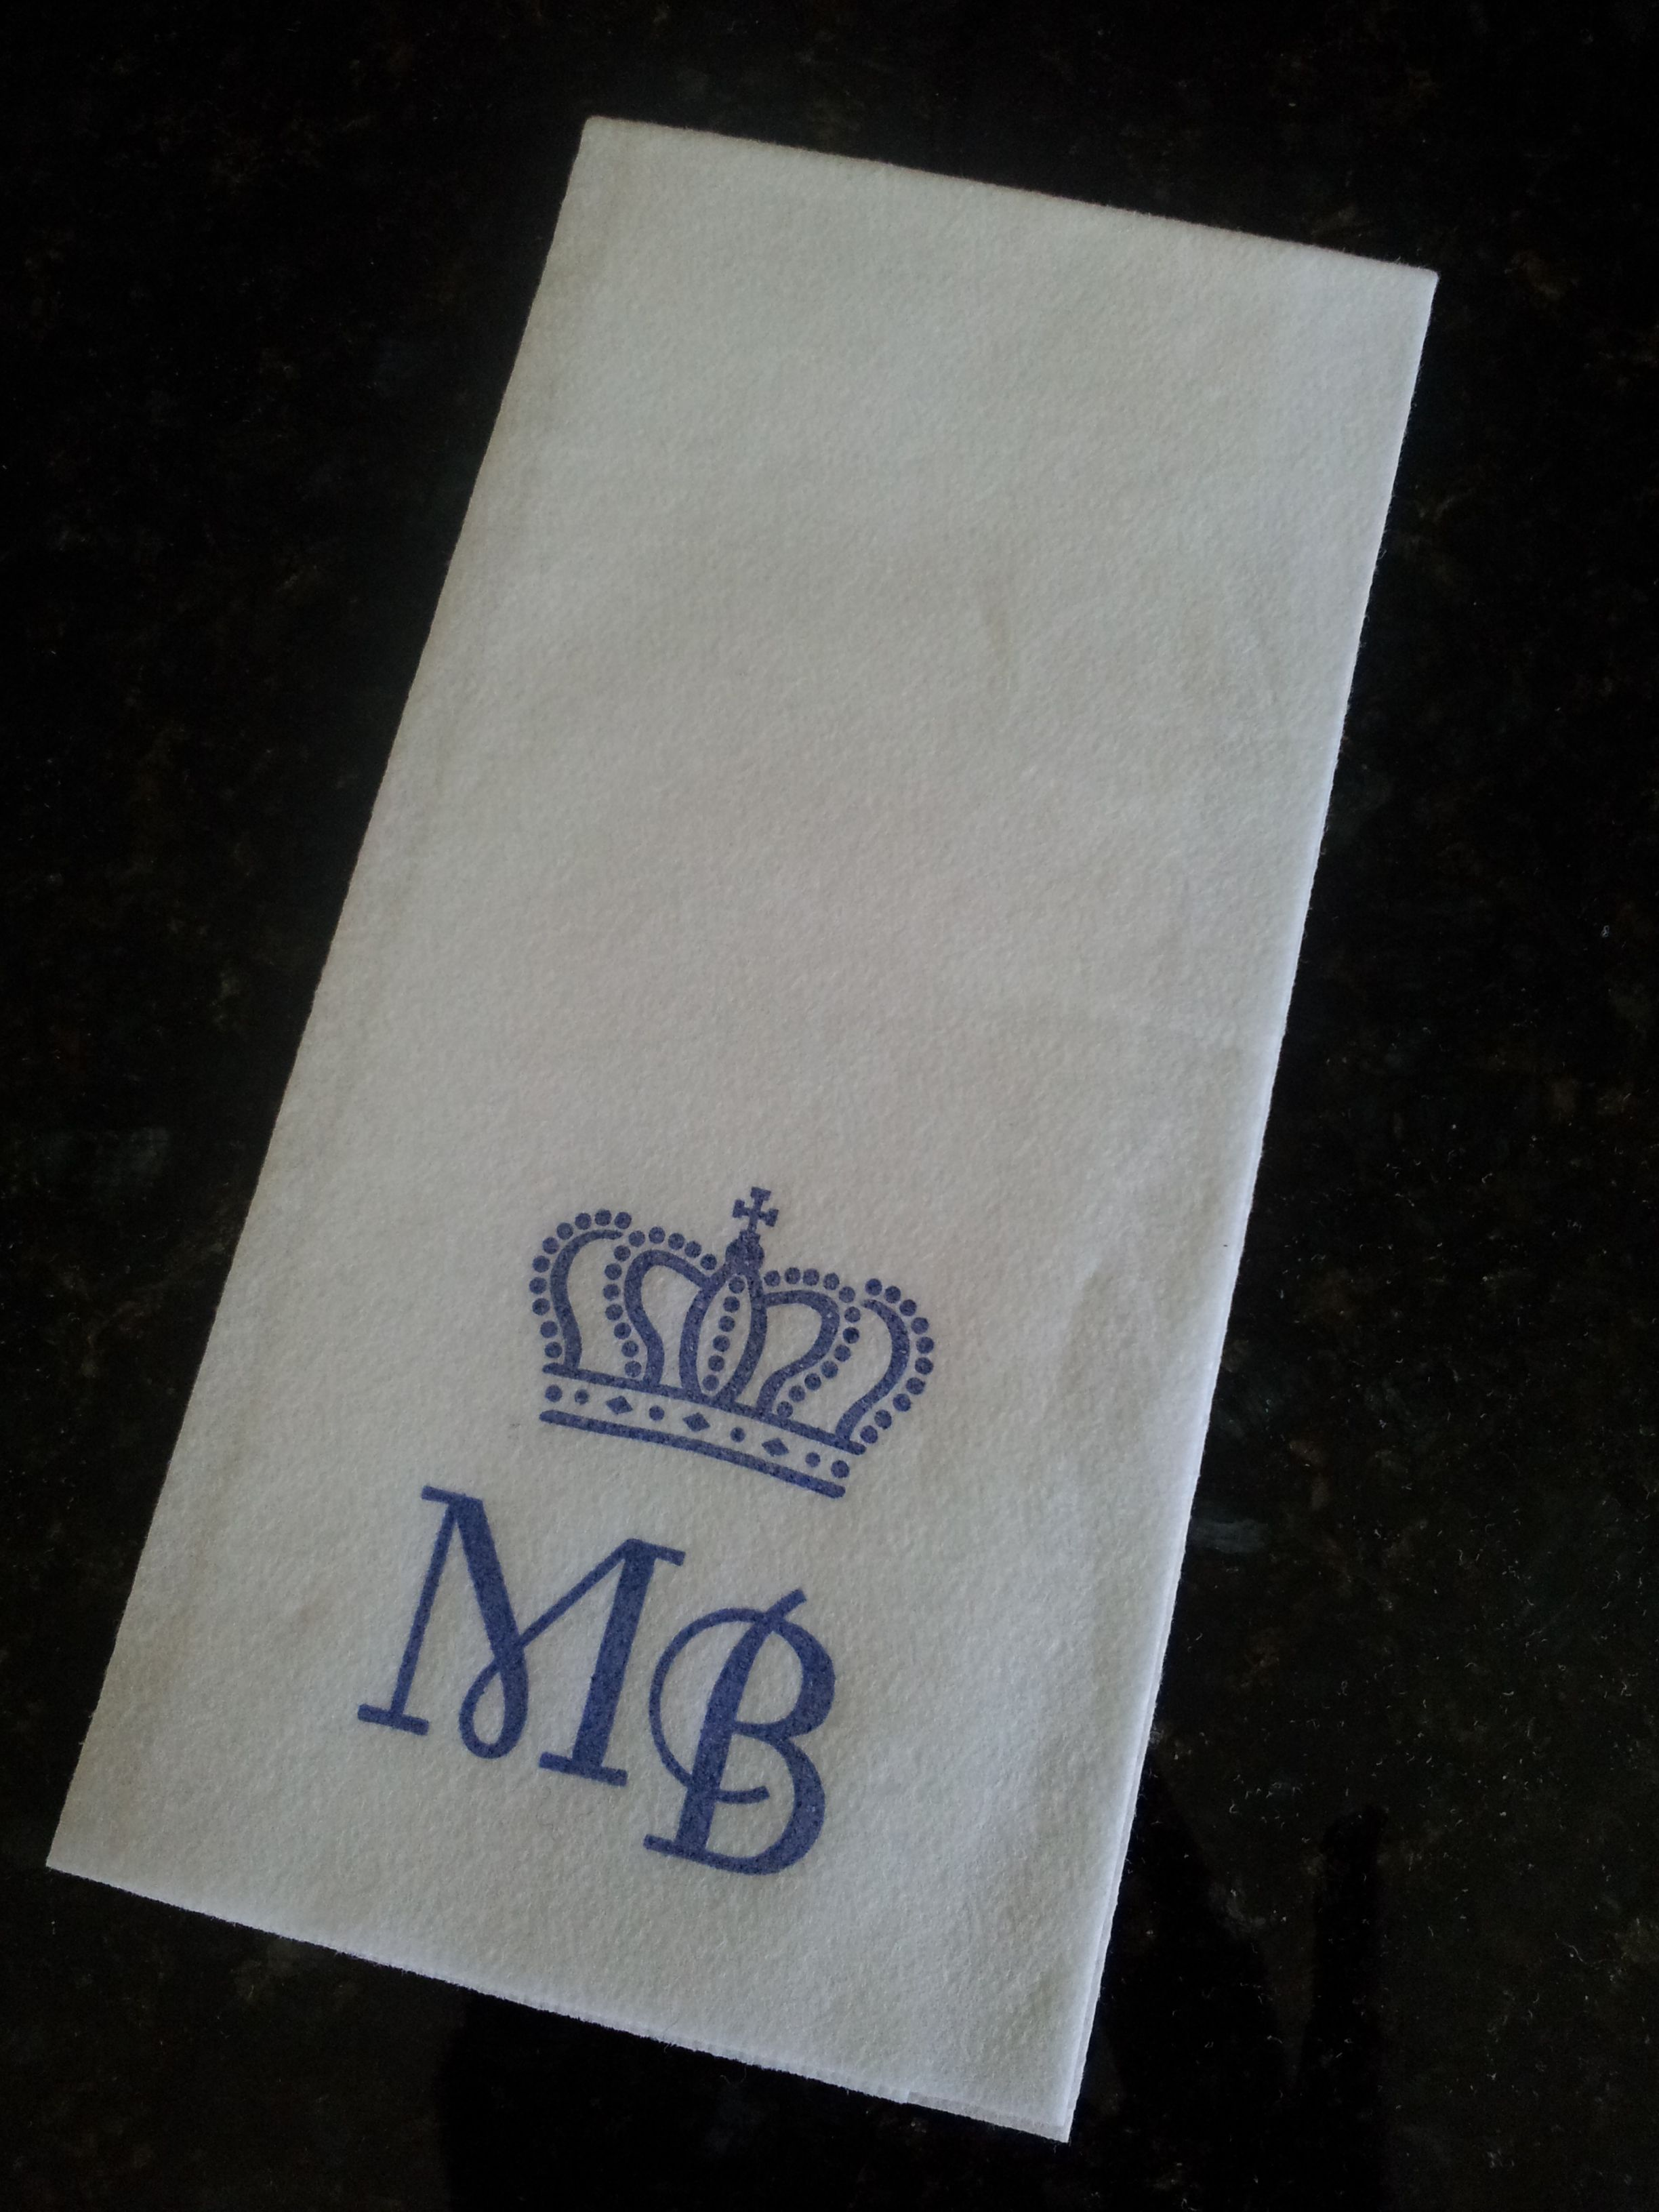 Personalized Guest Towels With A Crown In Royal Blue Ink And Large Capital Font